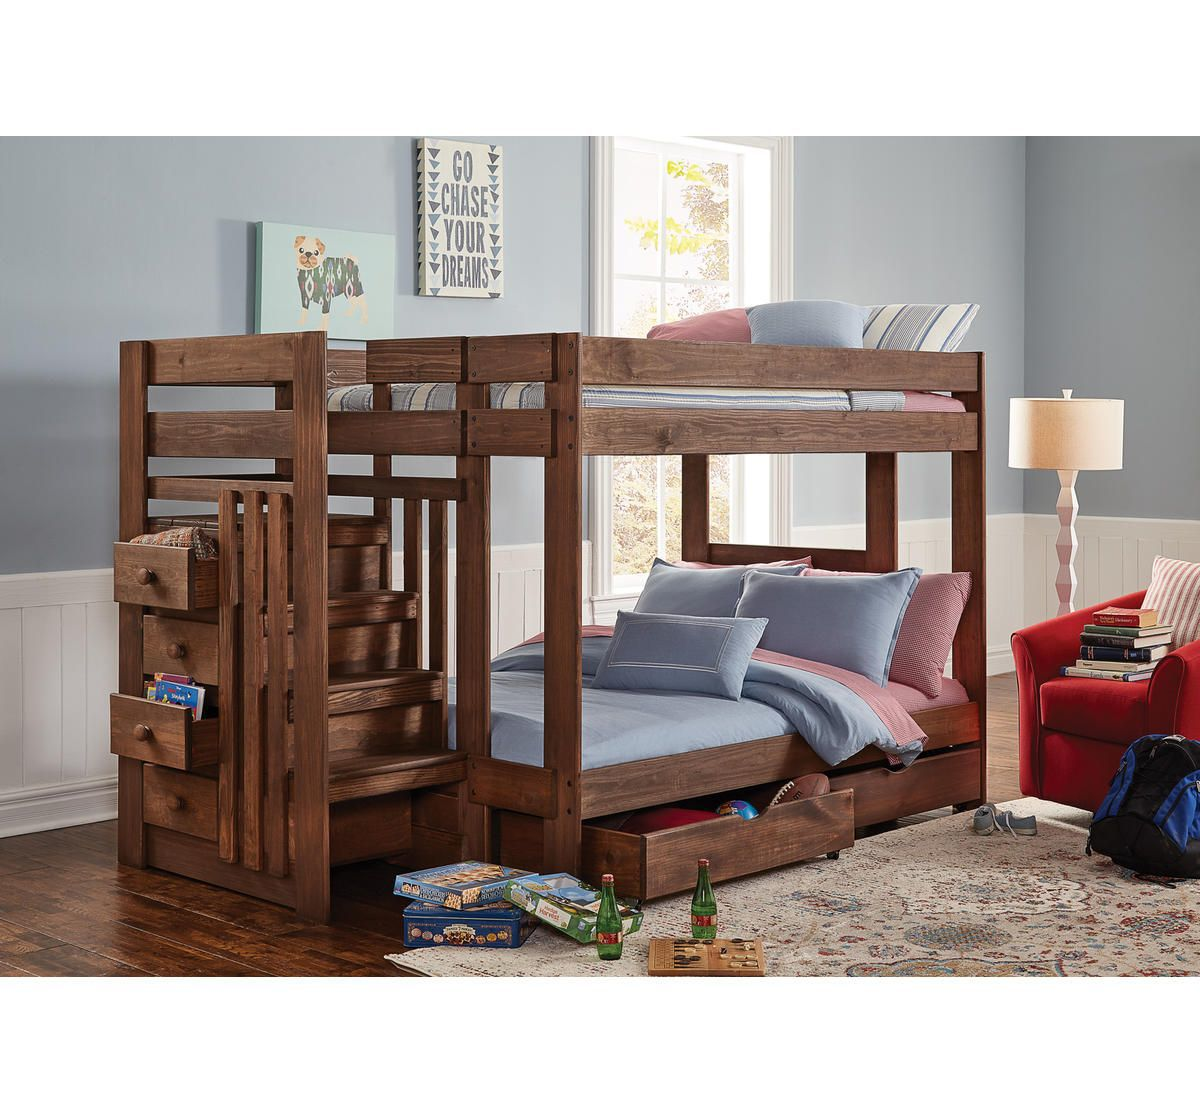 Baylee full over full stairbed Cabin bunk beds, High